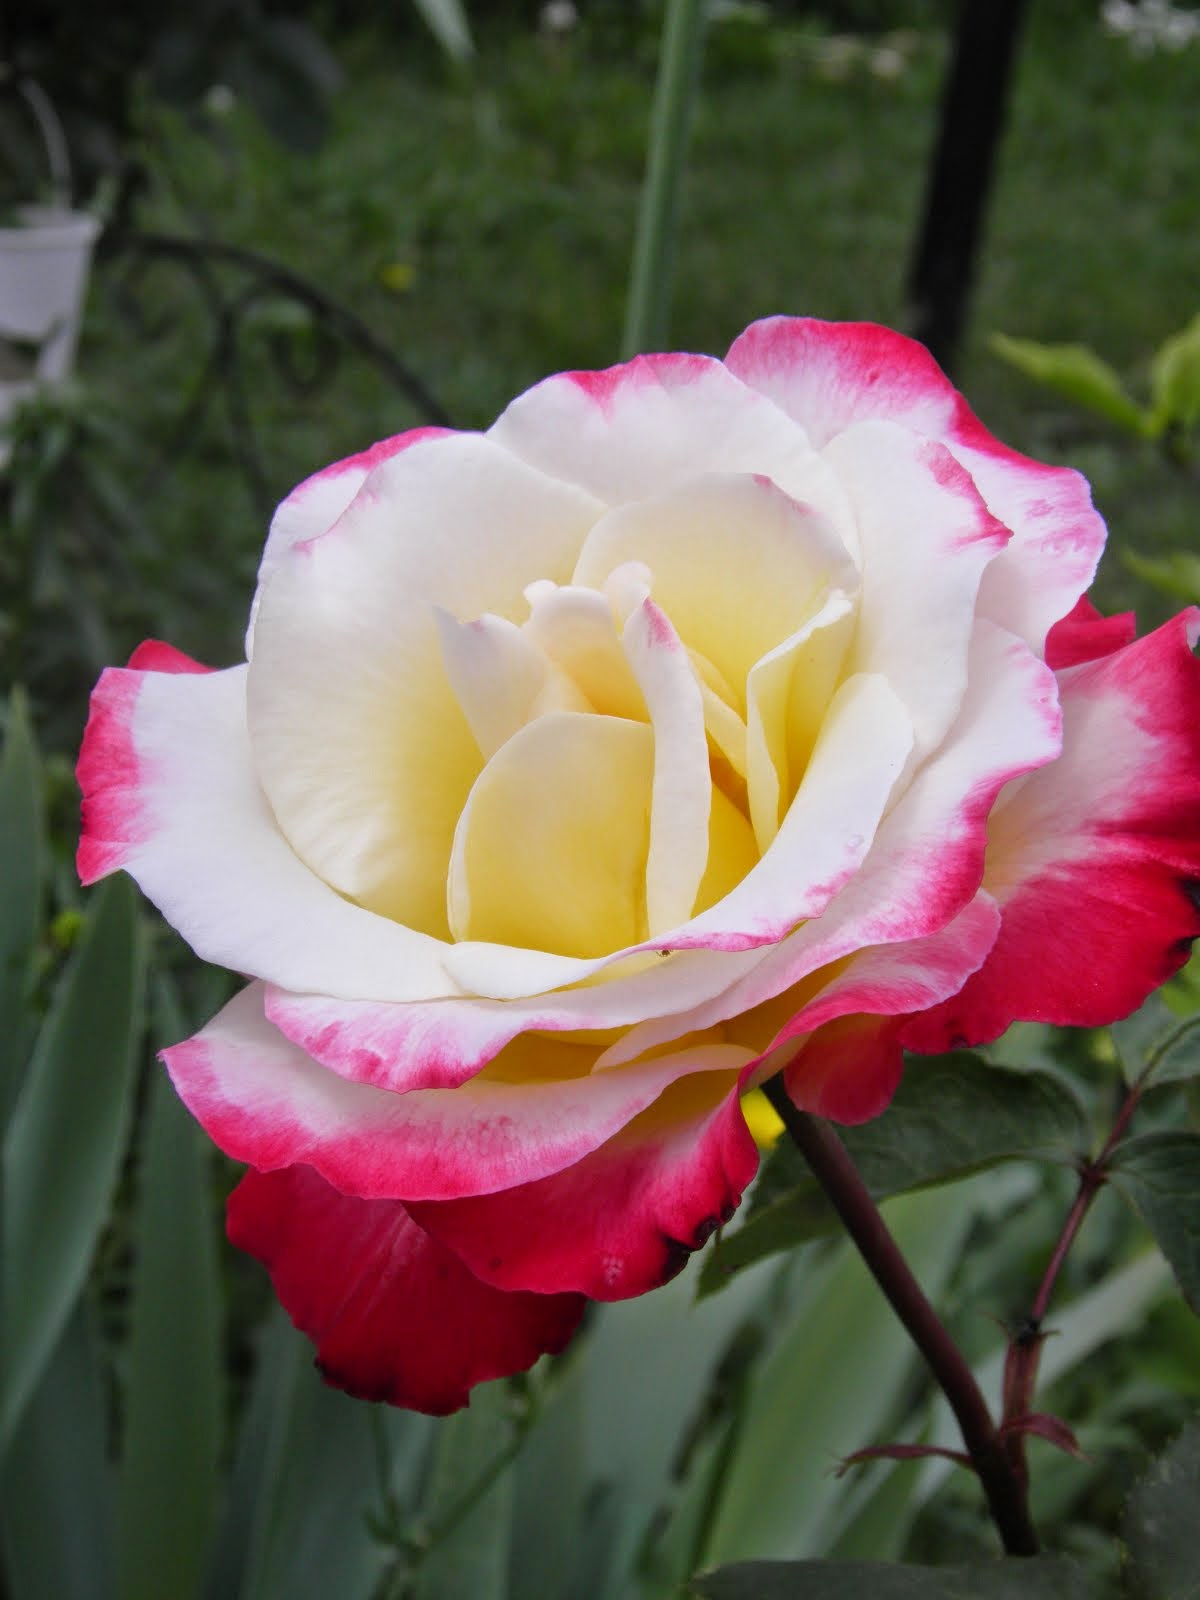 Rosier 'Double delight'